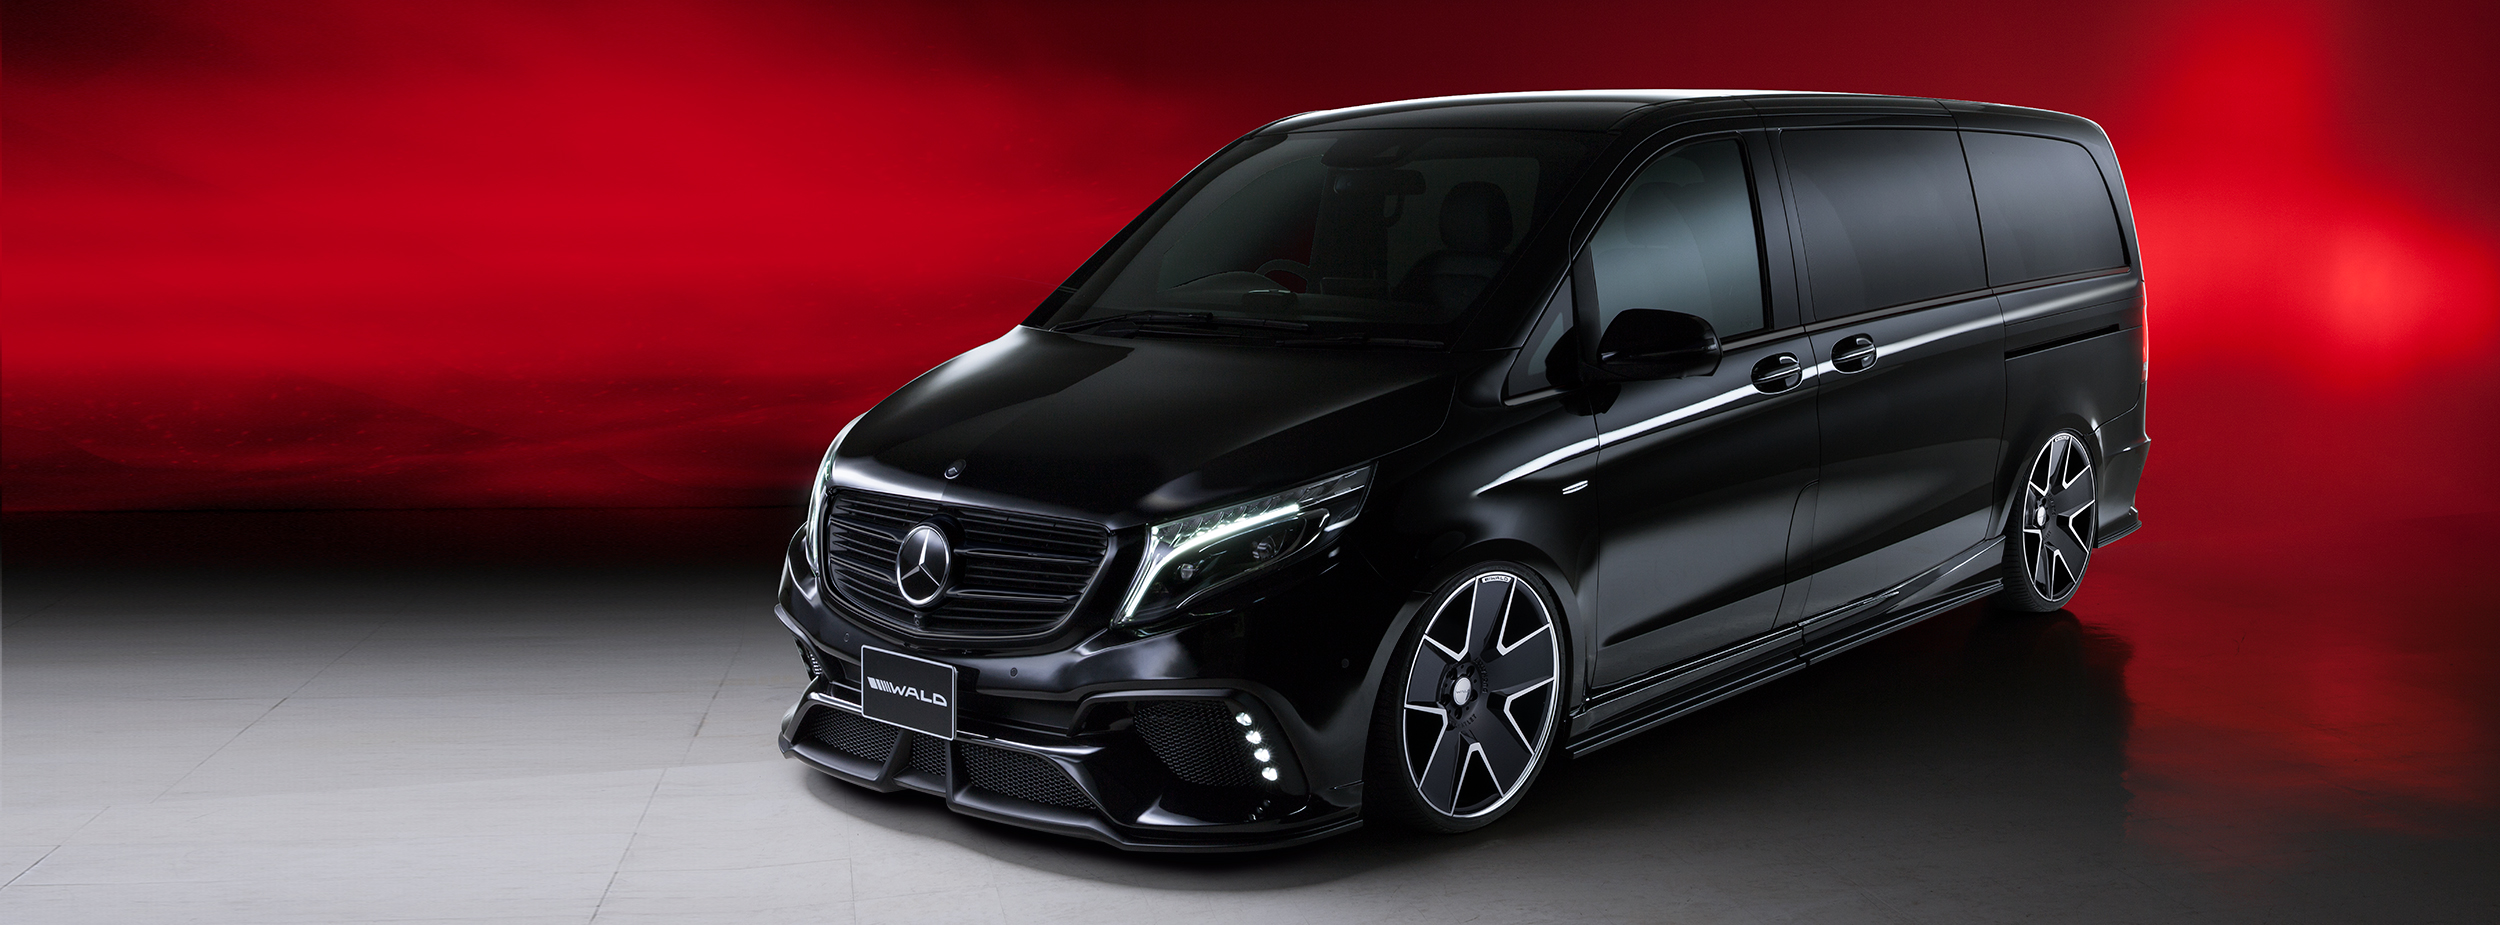 MERCEDES BENZ V-CLASS W447 WALD SPORTS LINE BLACK BISON EDITION